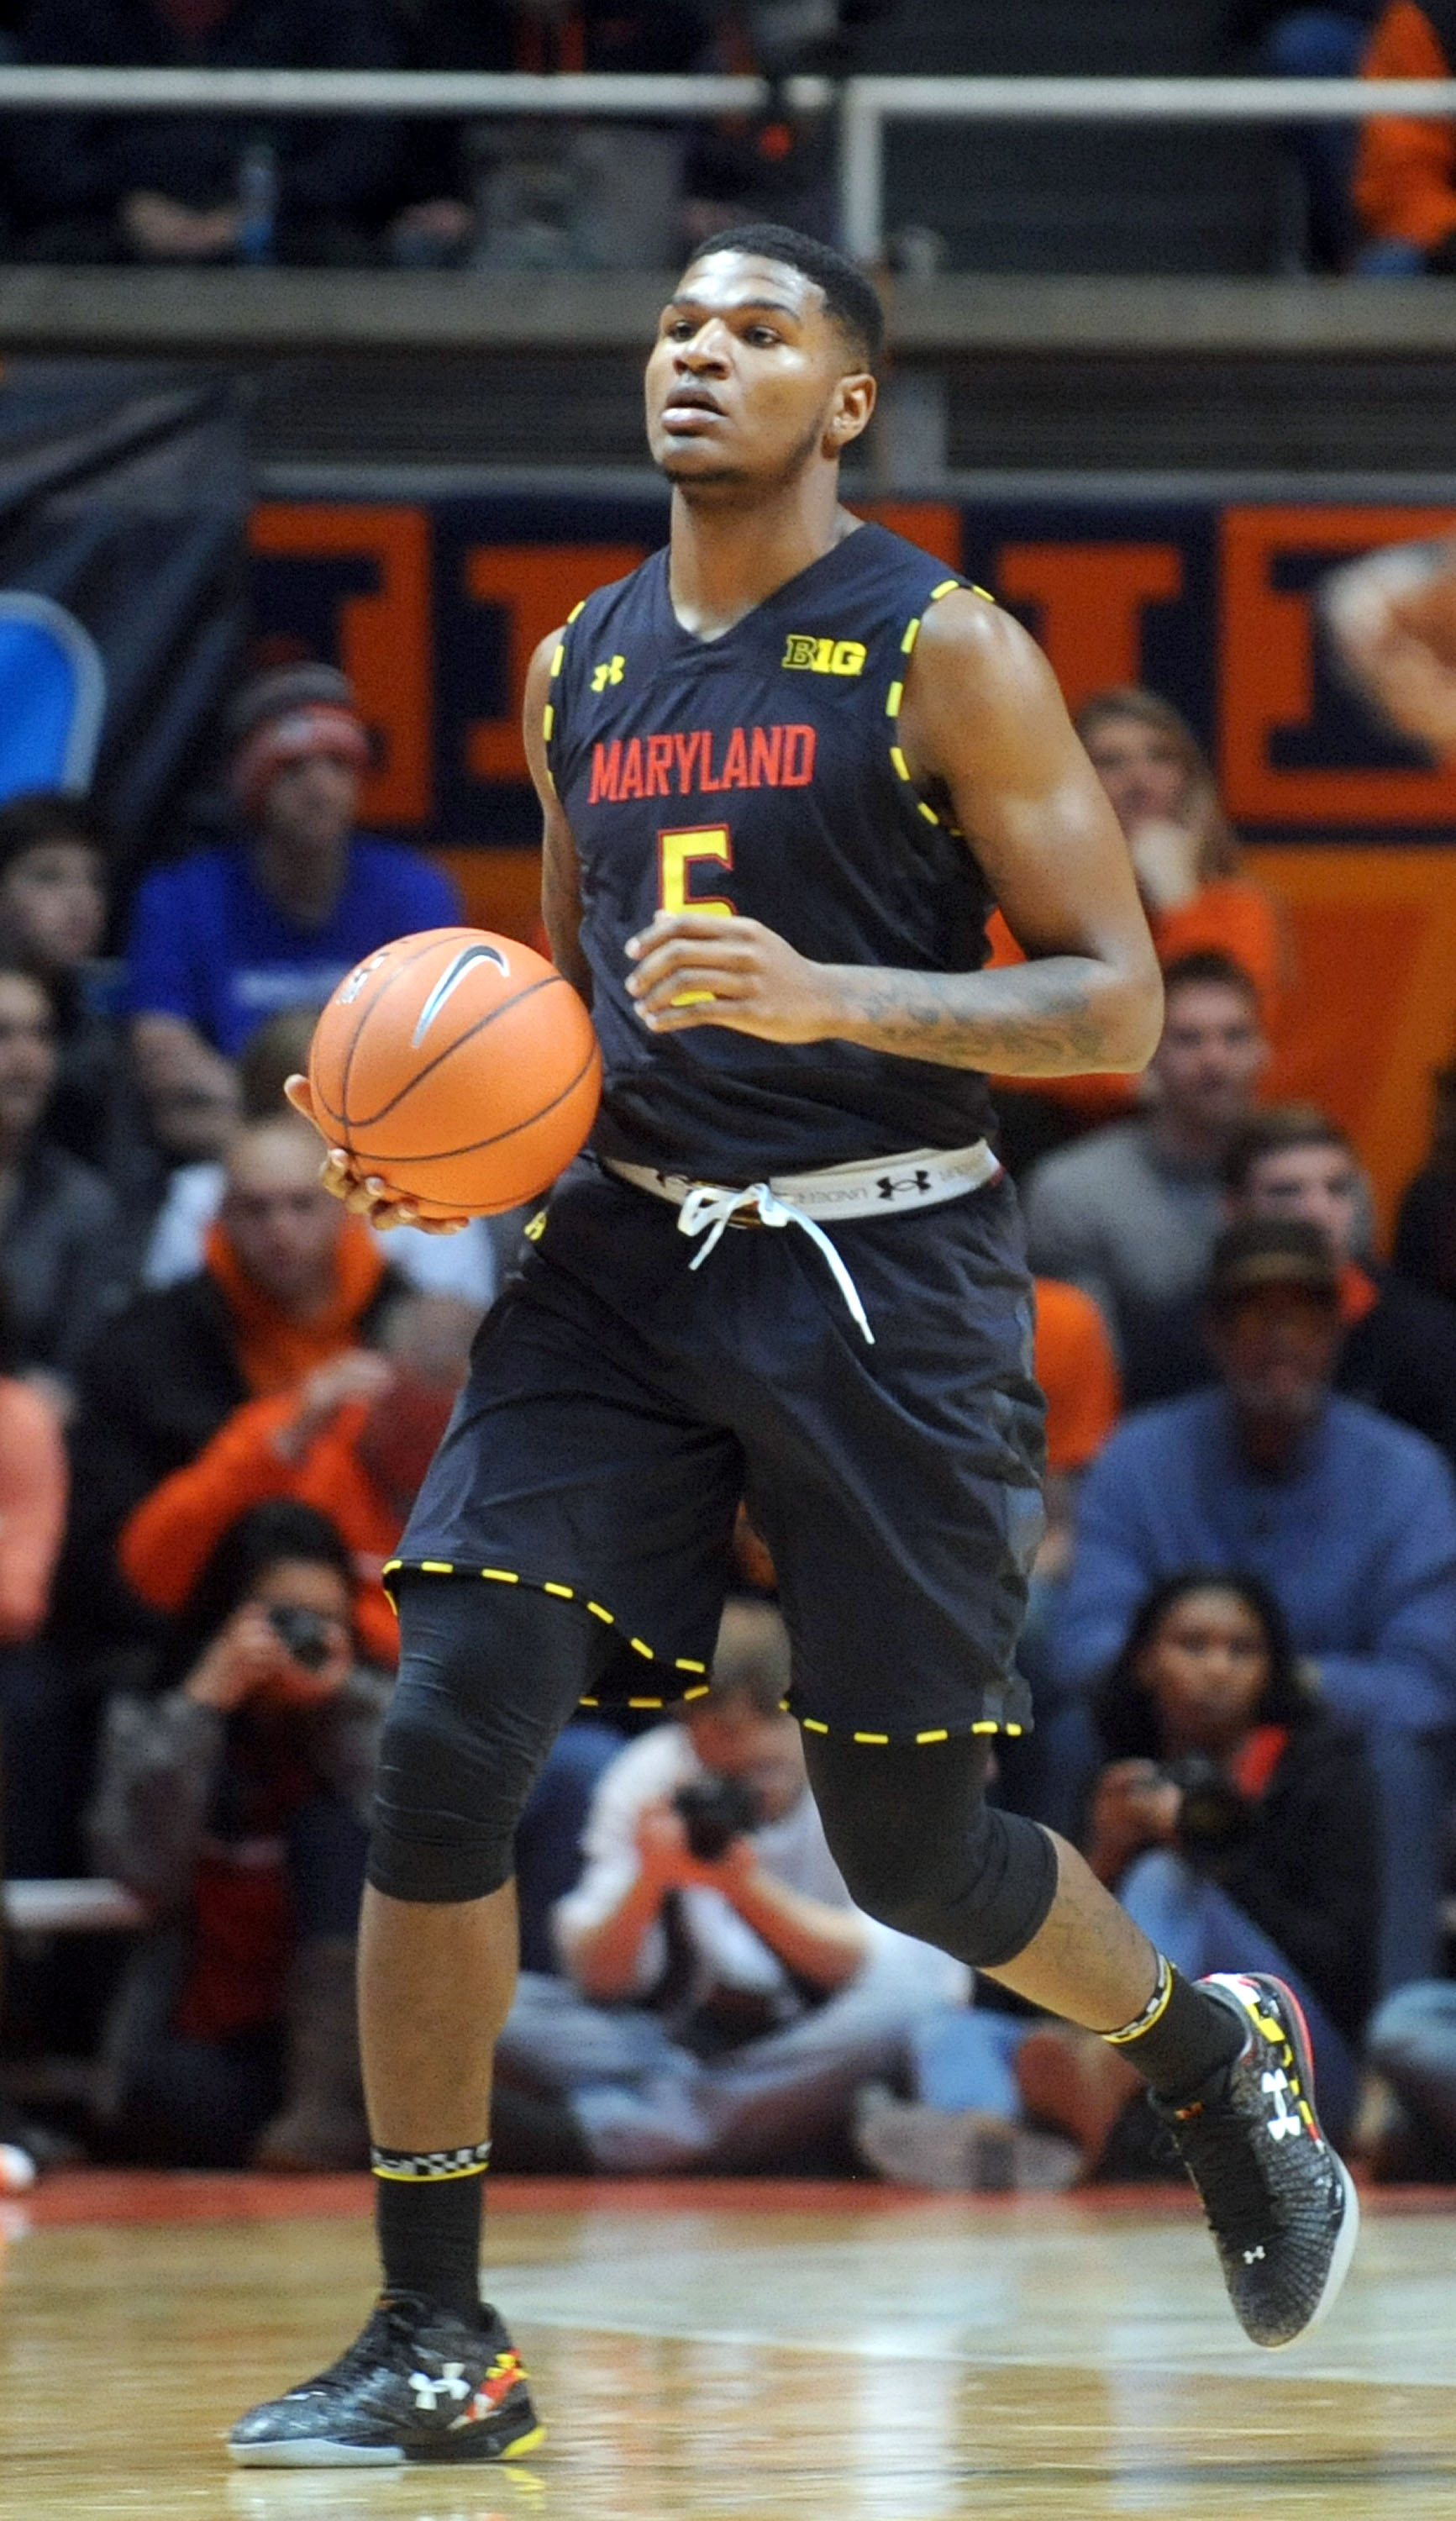 Maryland's Dion Wiley (5) dribbles during the second half of an NCAA college basketball game between Maryland and Illinois at State Farm Center  in Champaign, IL on Wednesday, Jan. 7, 2015. (AP Photo/Heather Coit)